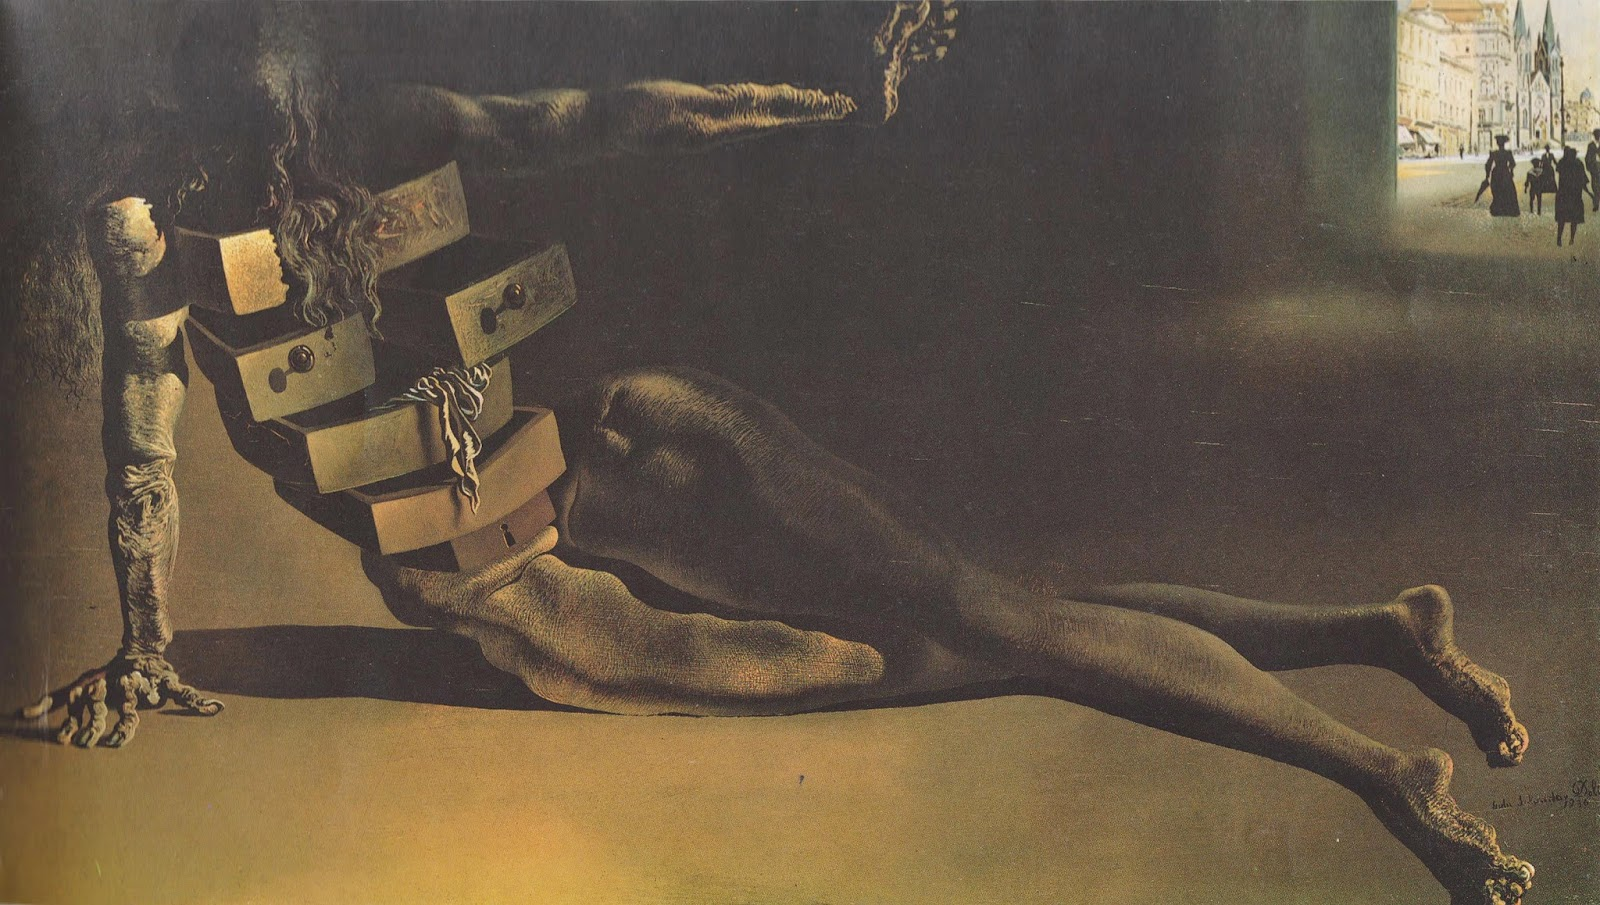 The Anthropomorphic Cabinet (1936) by Salvador Dalí